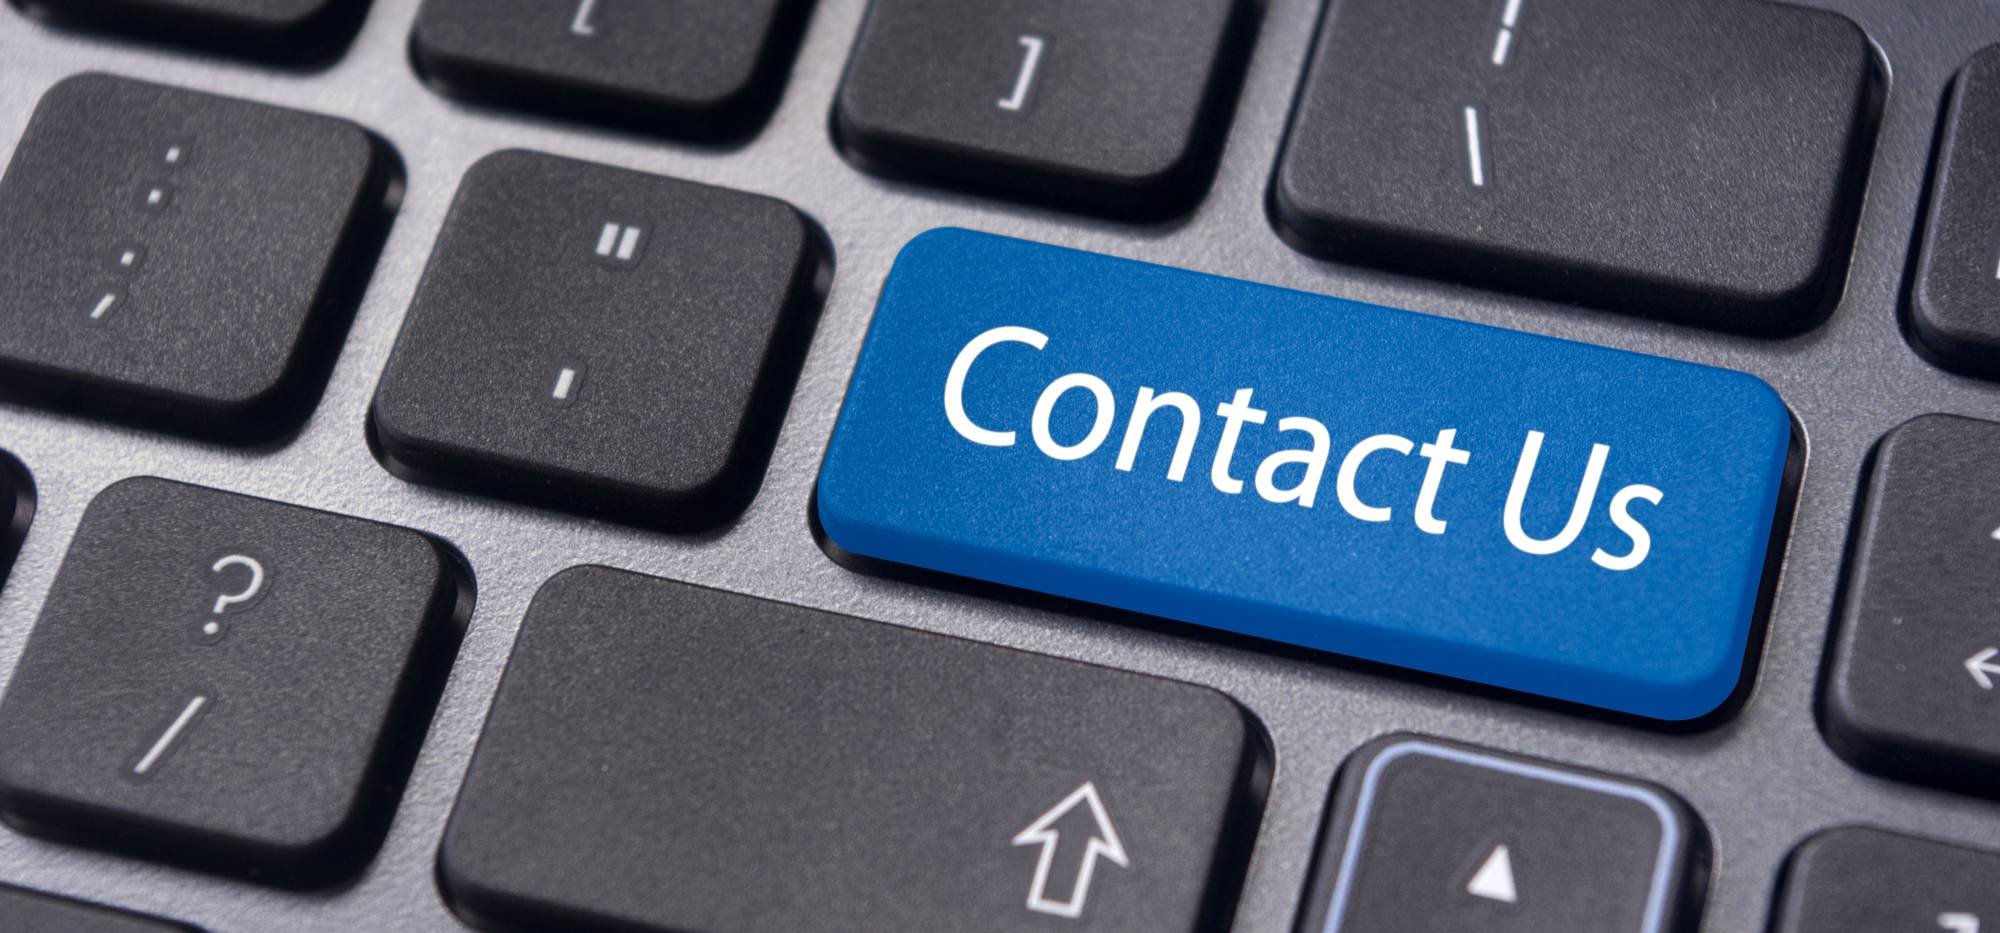 Business Contact Details - Contact Us